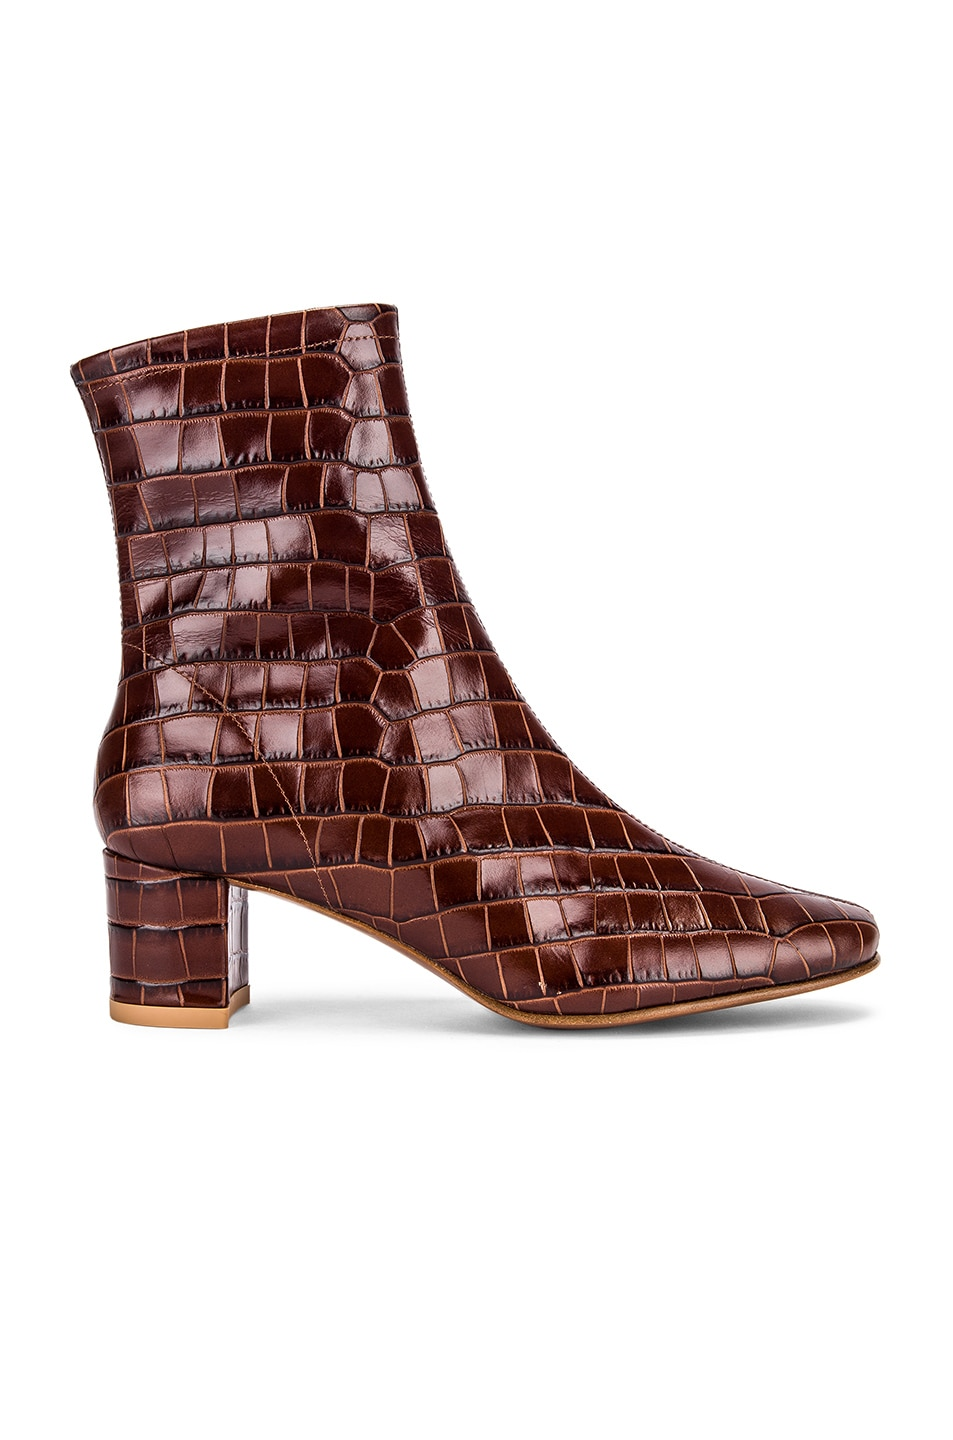 Image 1 of BY FAR Sofia Croco Embossed Leather Boot in Nutella